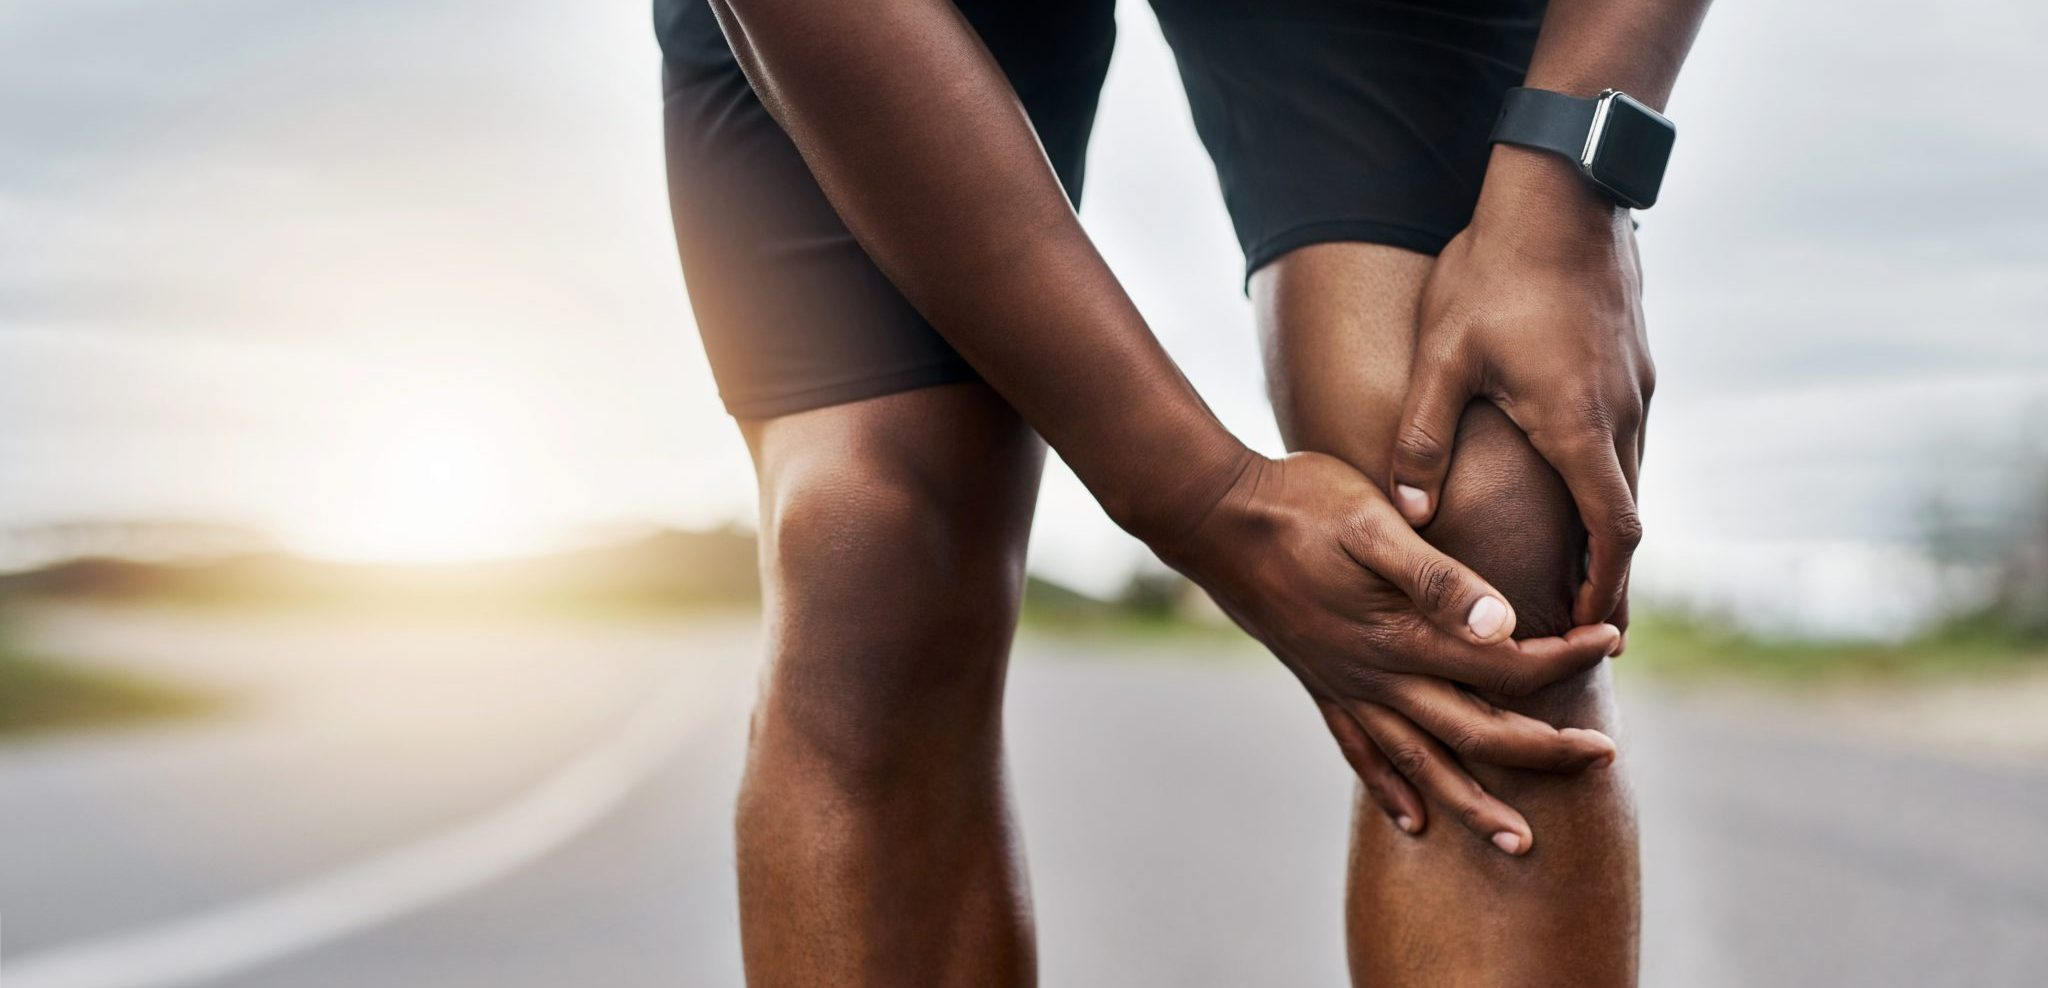 Patellar Tendonitis: What Is It and How to Prevent It